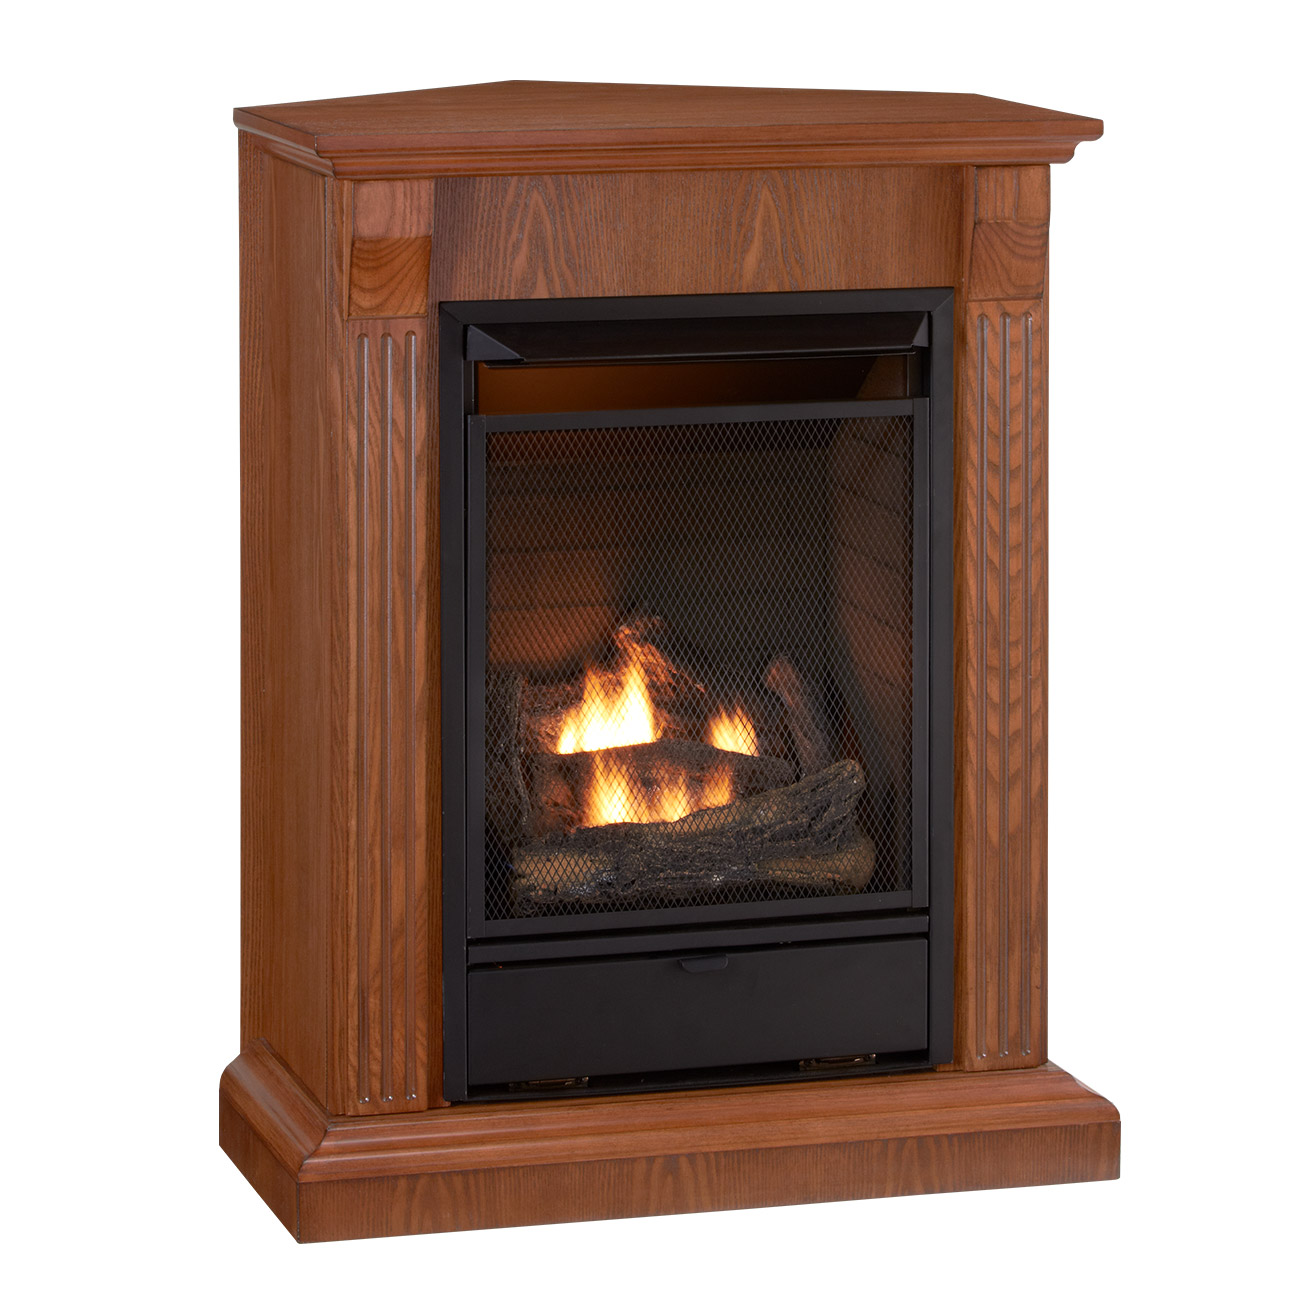 Ventless Fireplace Model Etf200tcc